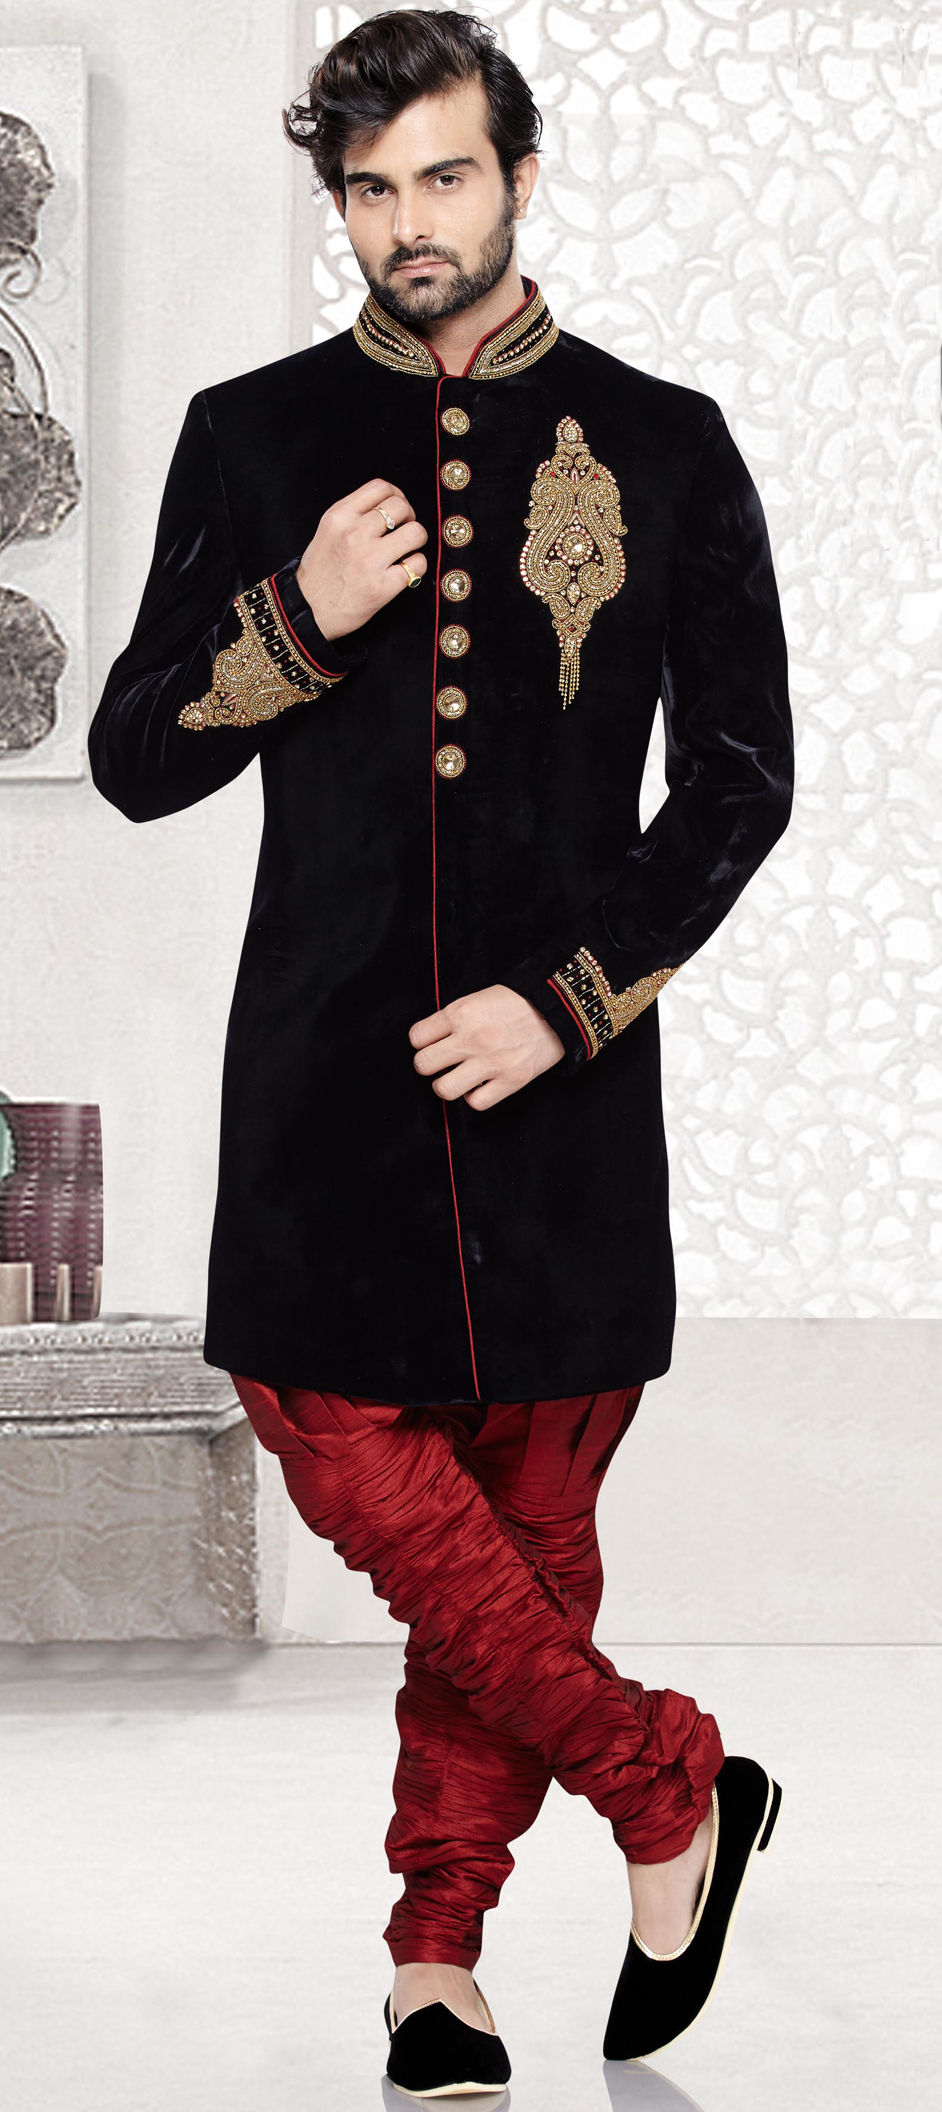 503843: Black and Grey color family stitched IndoWestern Dress .